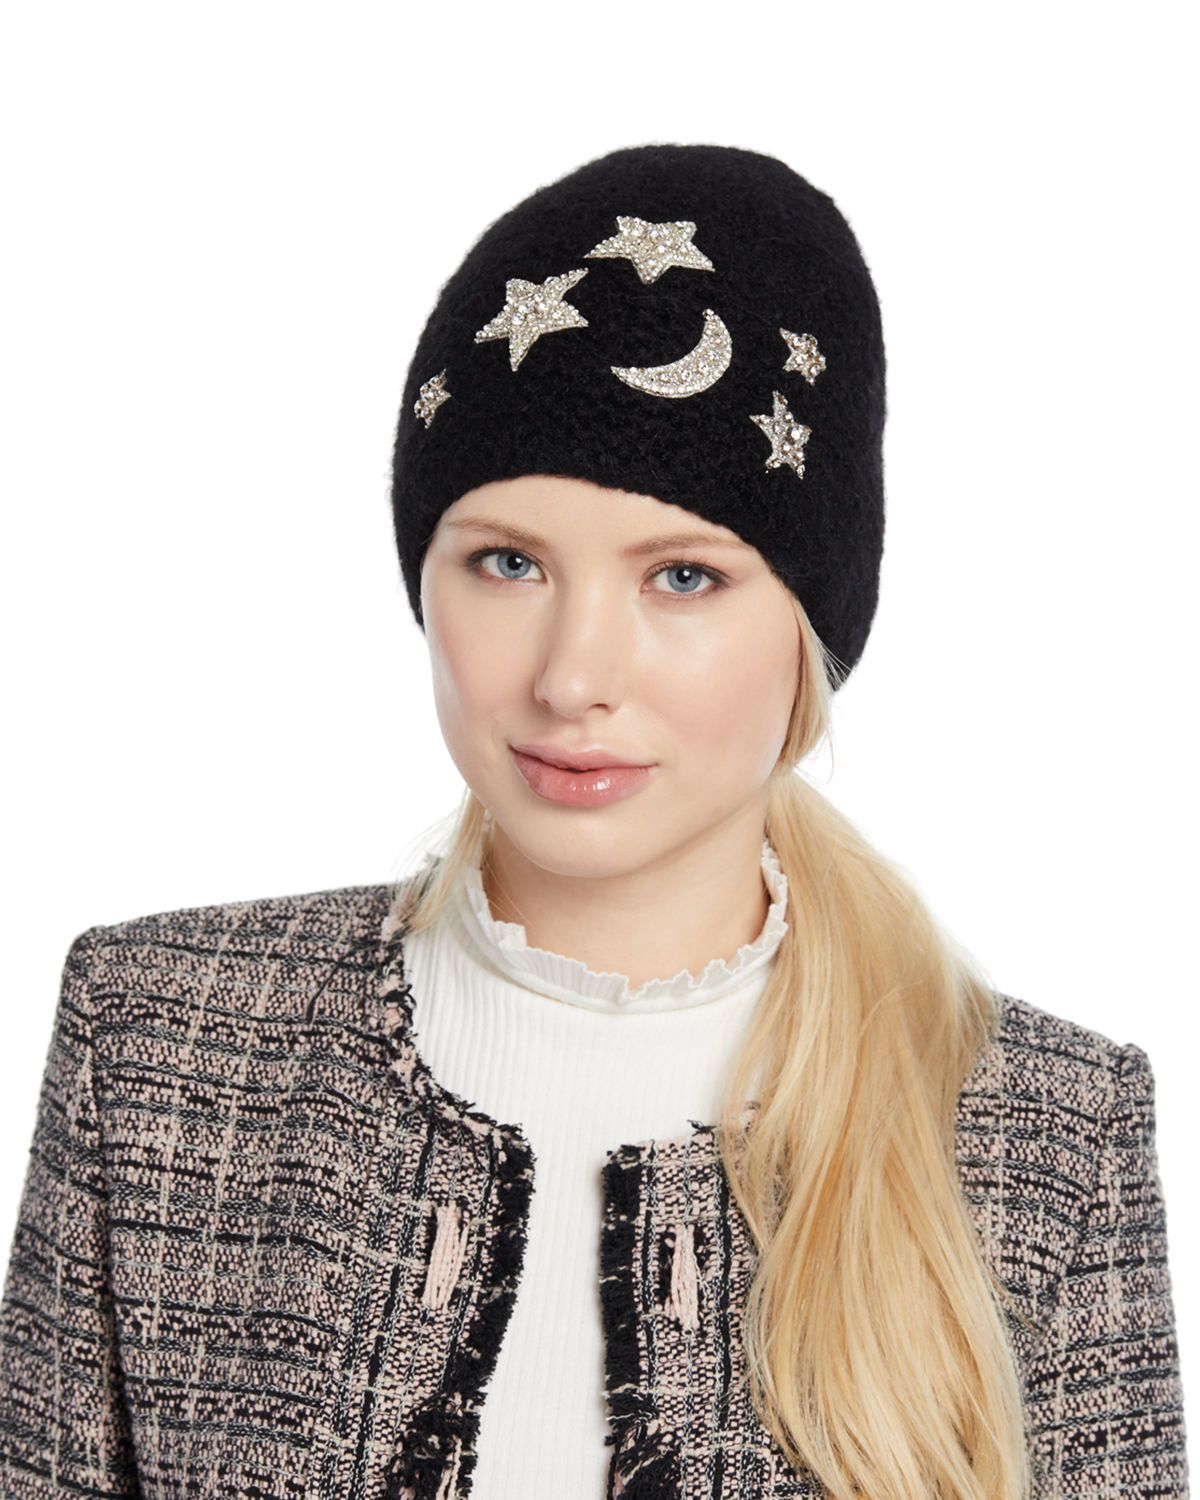 c5c2aab7469 Buy beanies hats for women - Best women s beanies hats shop - Cools.com